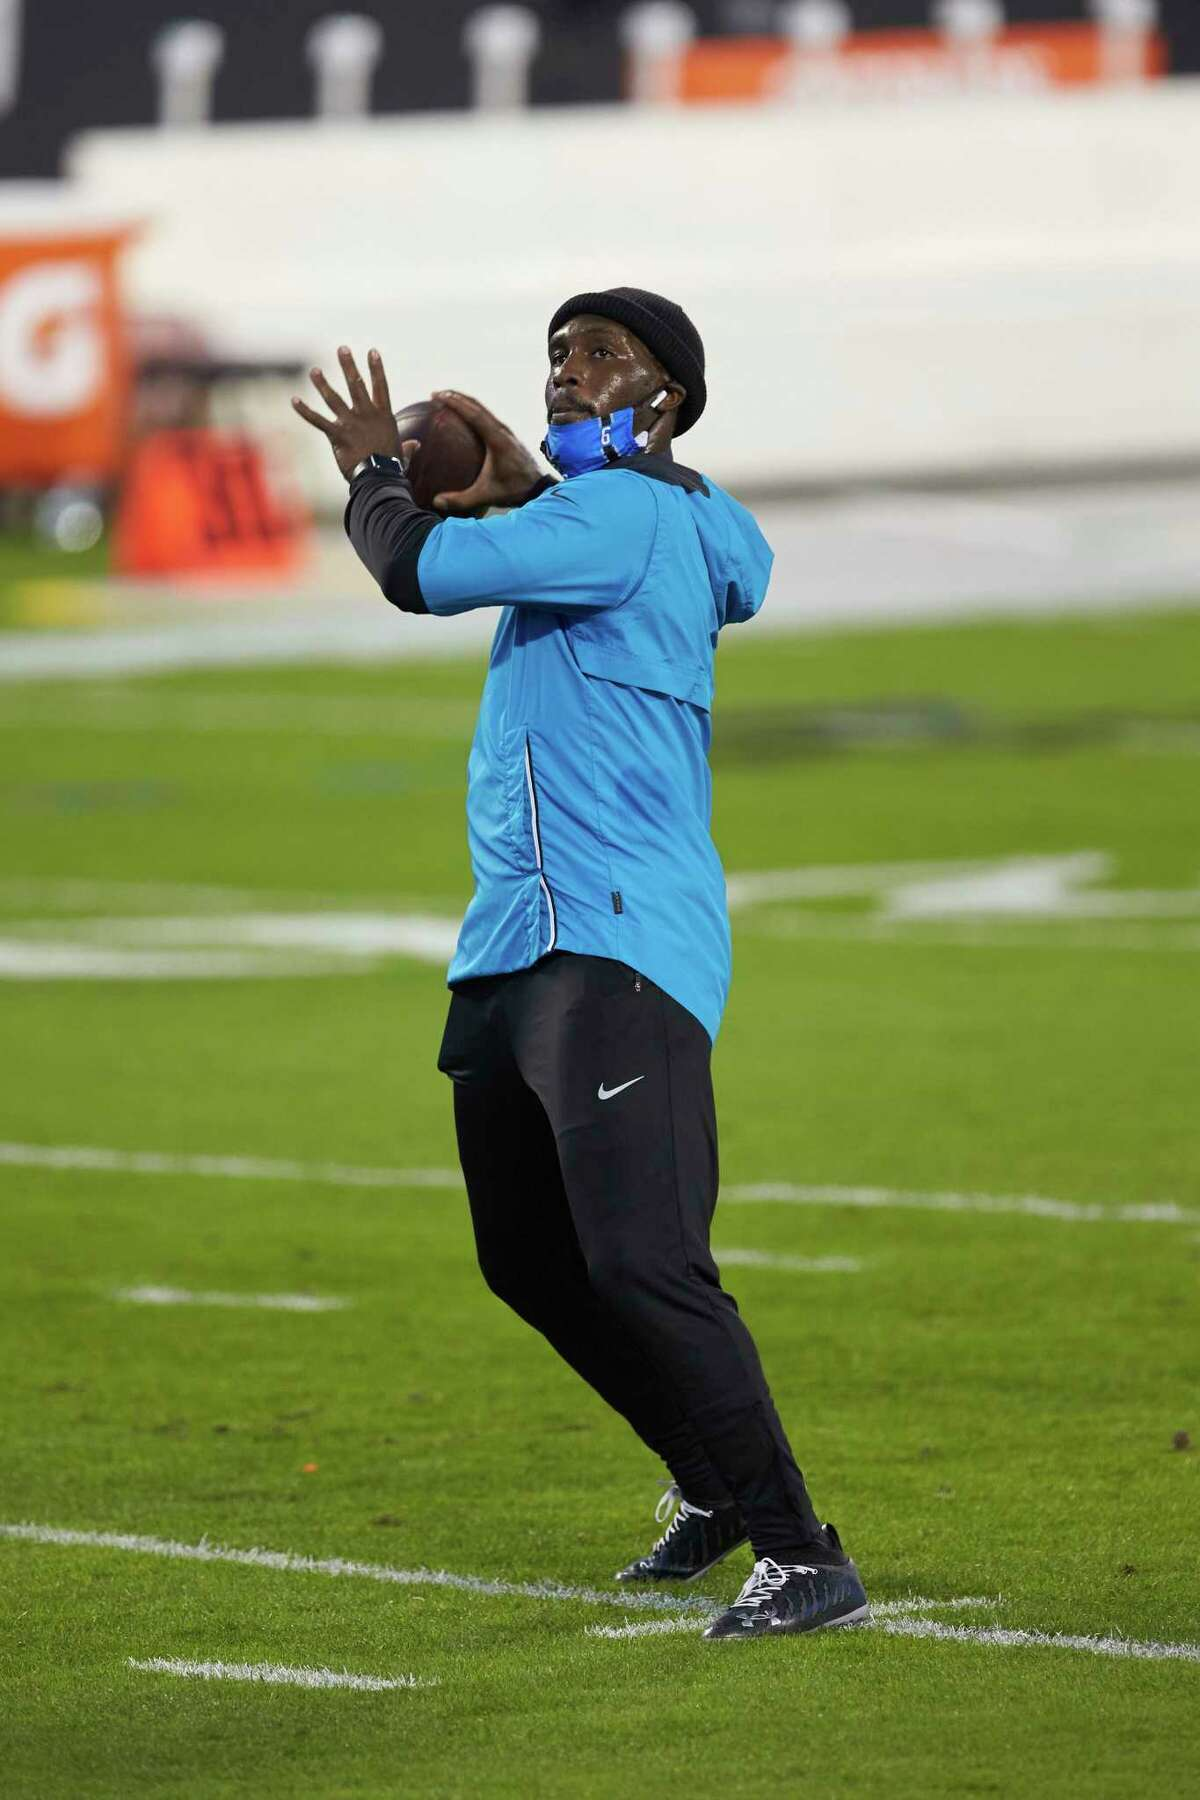 Carolina Panthers quarterback P.J. Walker (6) warms up prior tp an NFL football game against the Atlanta Falcons, Thursday, Oct. 29, 2020, in Charlotte, N.C. (AP Photo/Brian Westerholt)